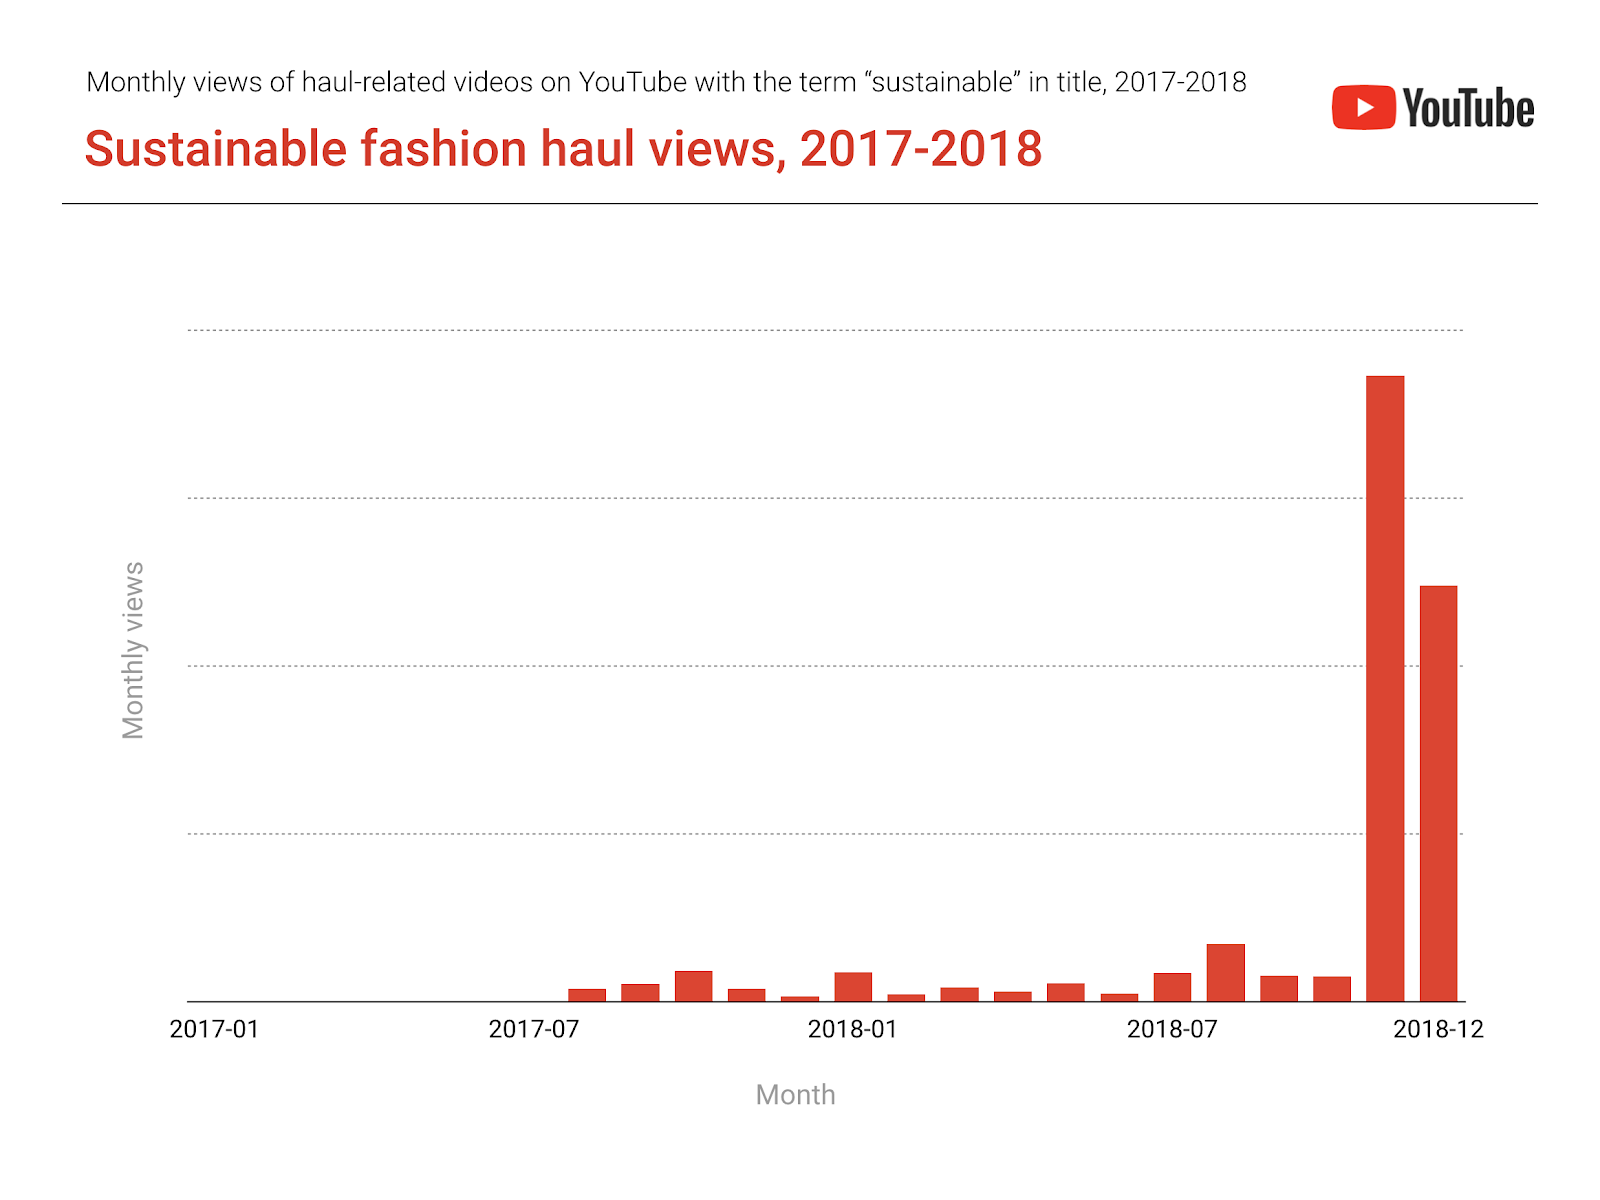 249bce7960 ... not just to make sure that their look is on trend but to examine its  potential impact on the environment. Sustainable fashion haul videos have  increased ...